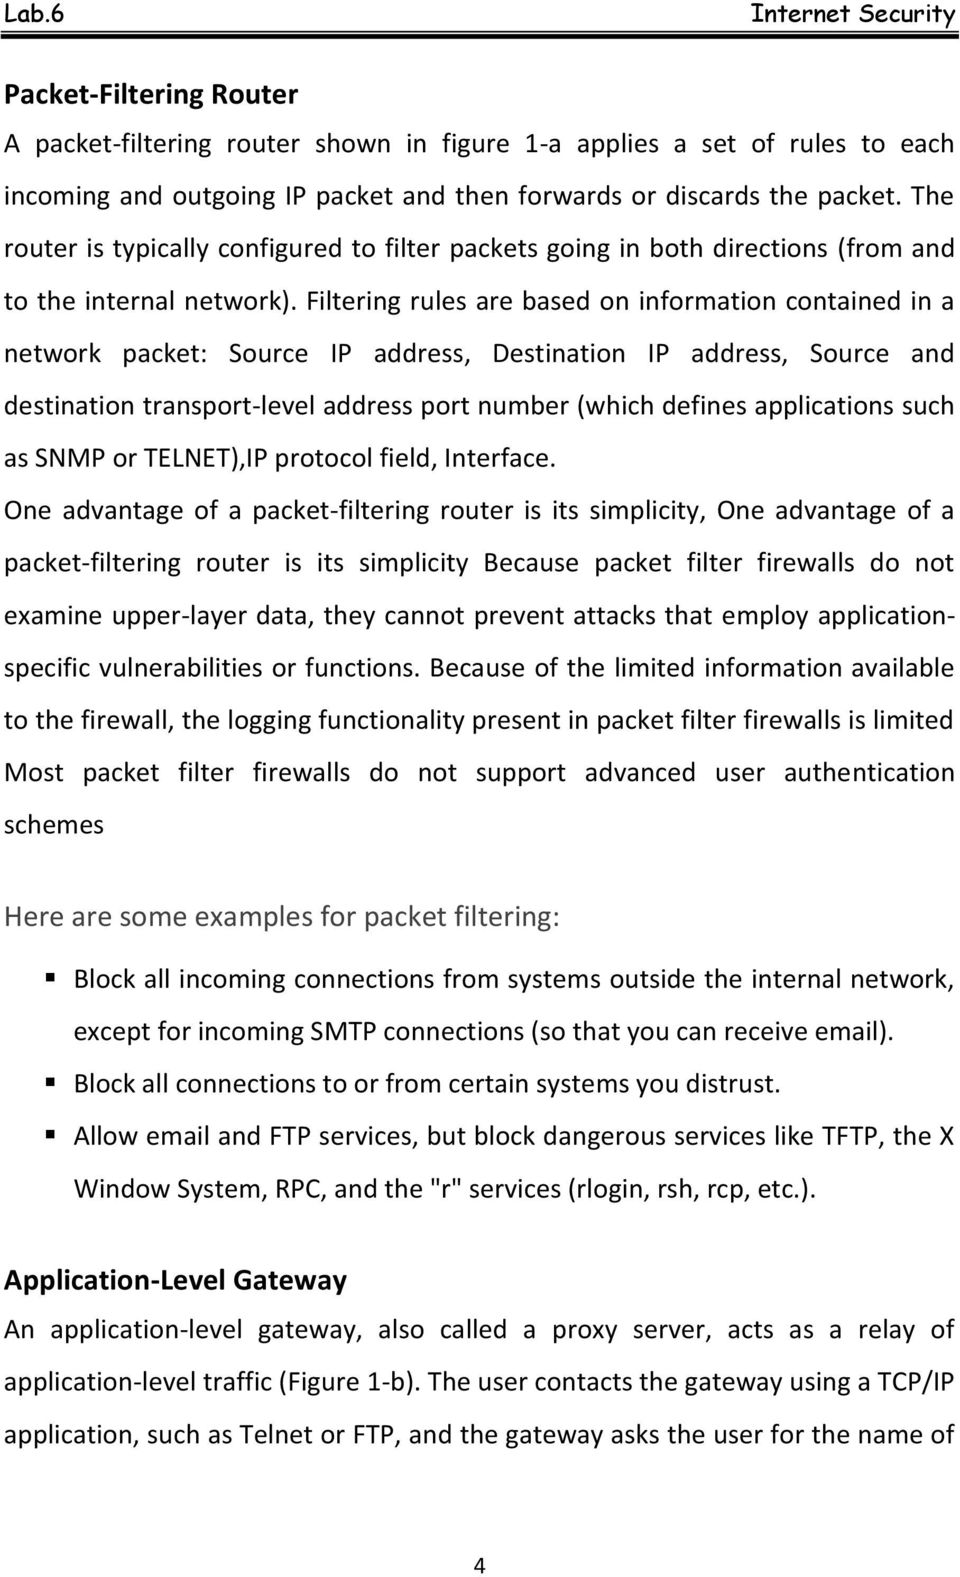 Filtering rules are based on information contained in a network packet: Source IP address, Destination IP address, Source and destination transport-level address port number (which defines